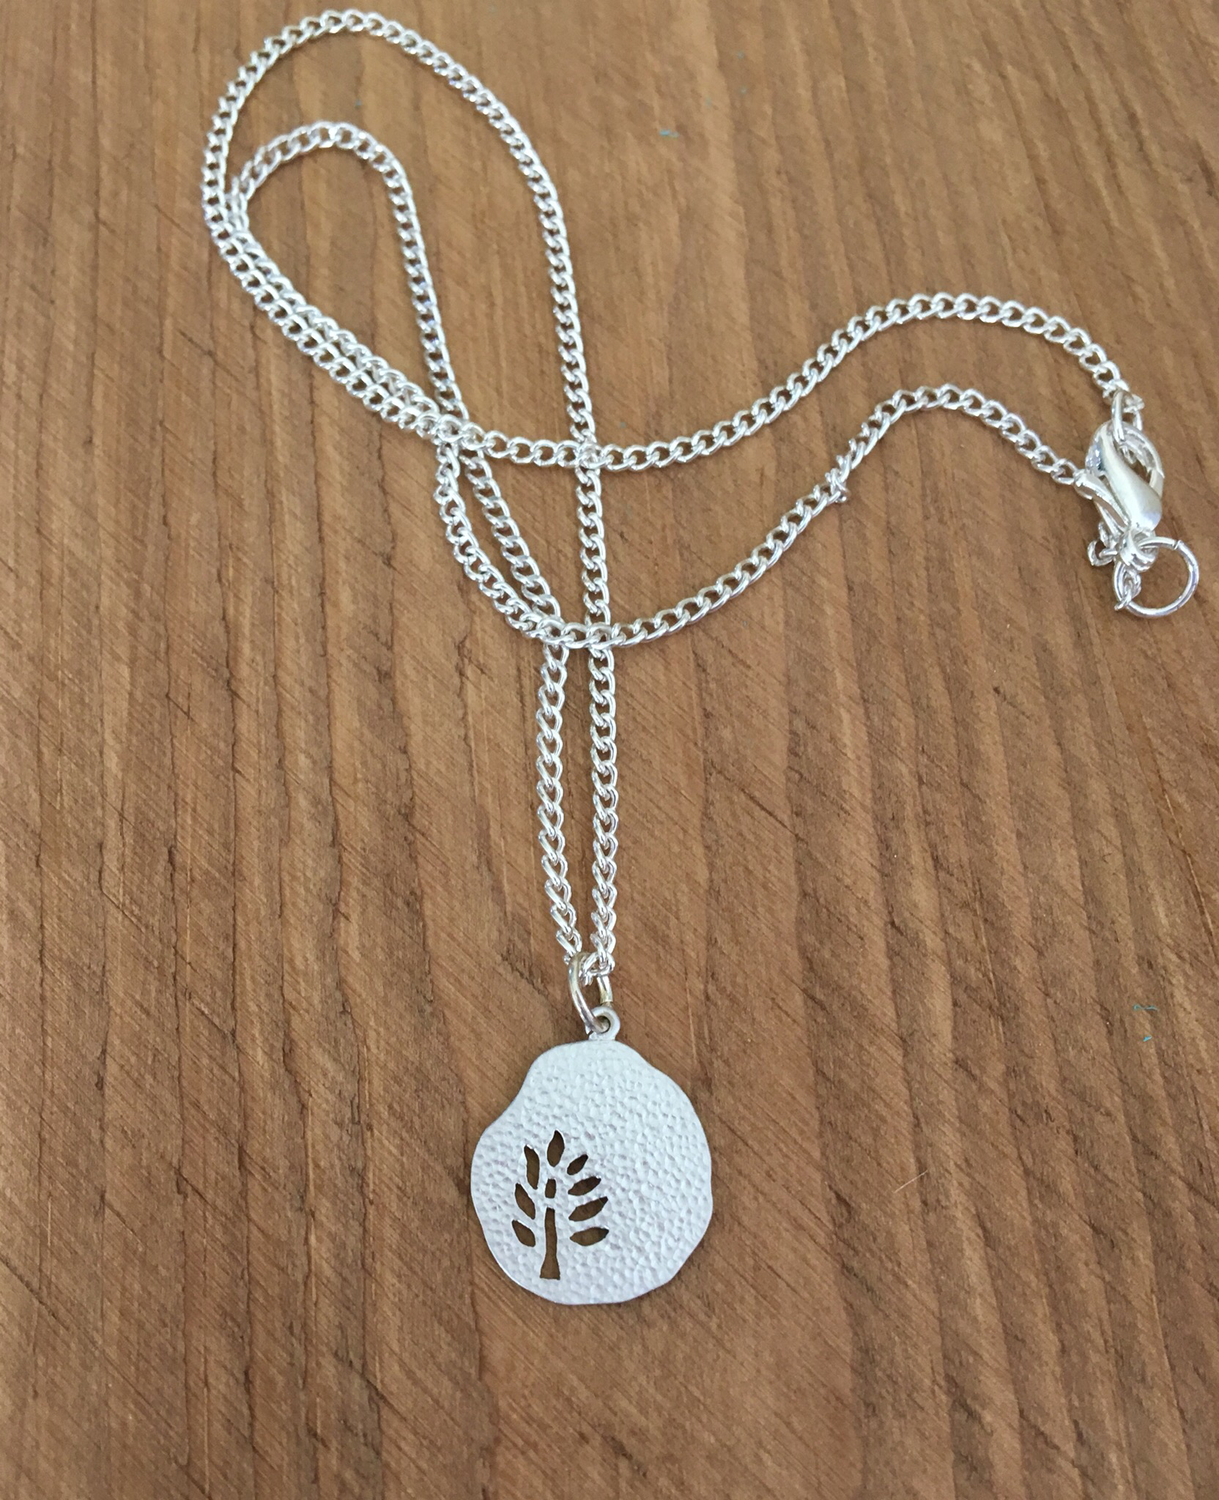 The Aspen Necklace